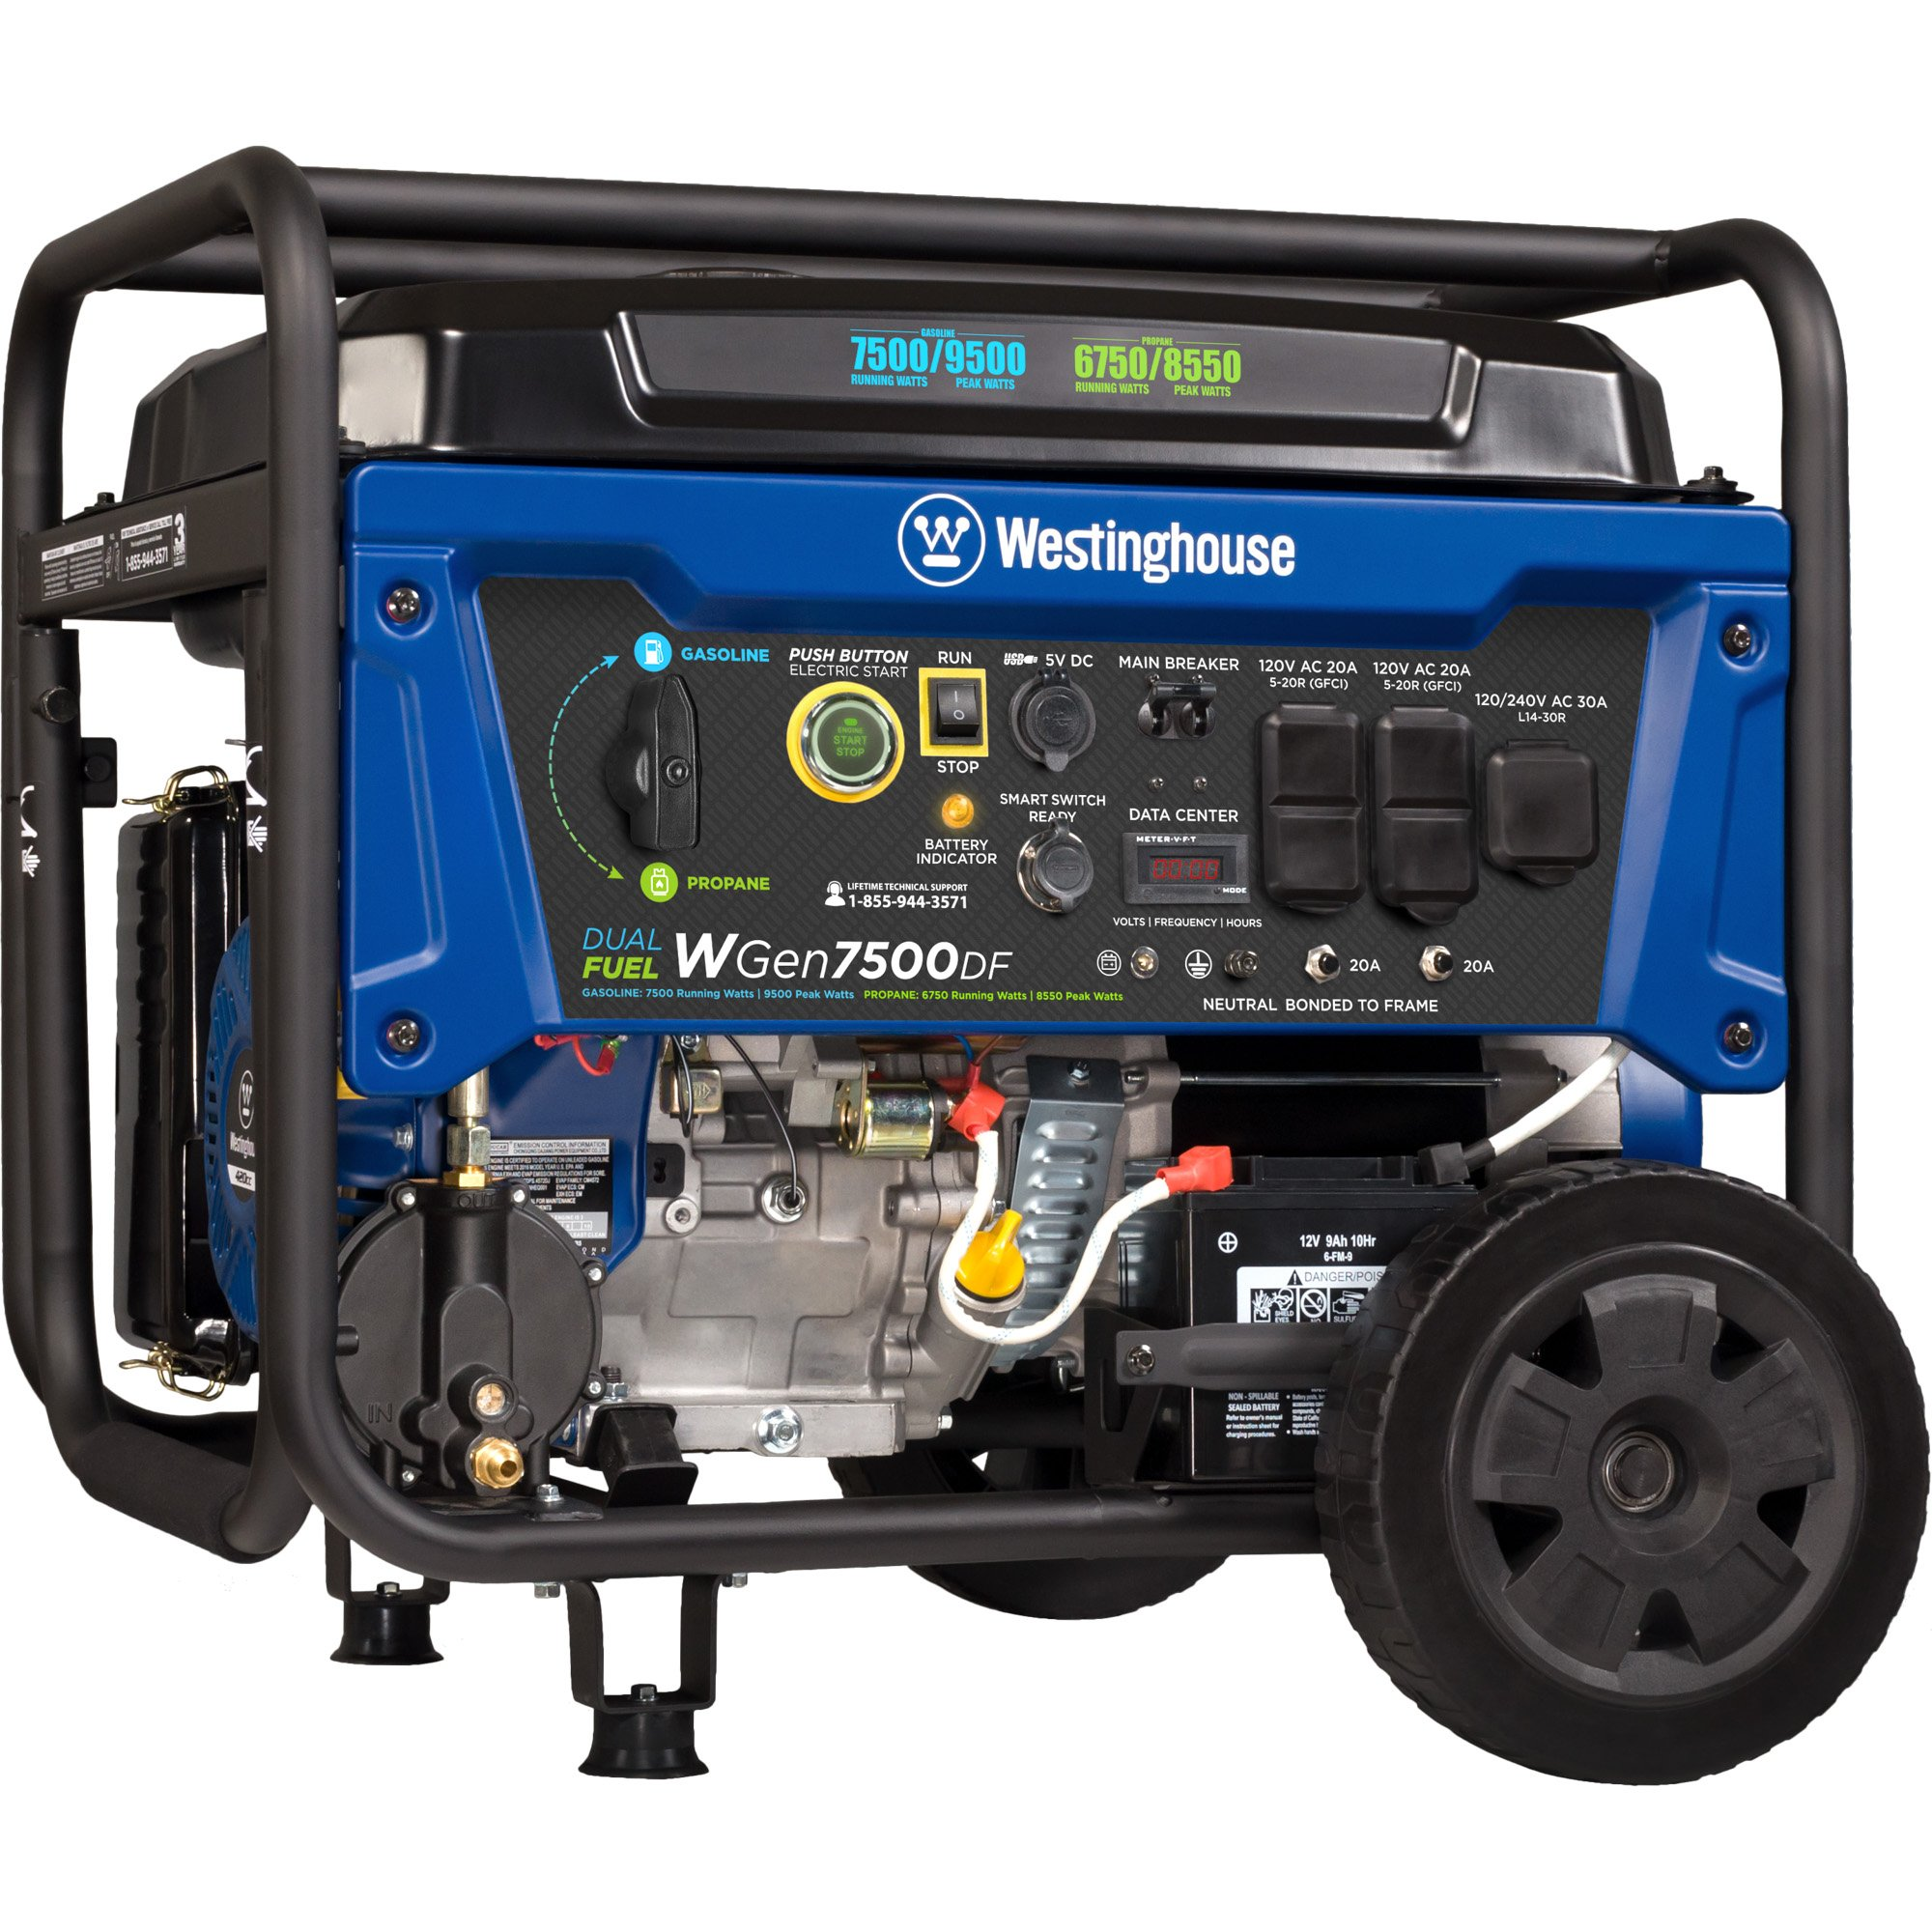 Westinghouse WGen7500DF Dual Fuel Portable Generator – 7500 Rated Watts & 9500 Peak Watts –